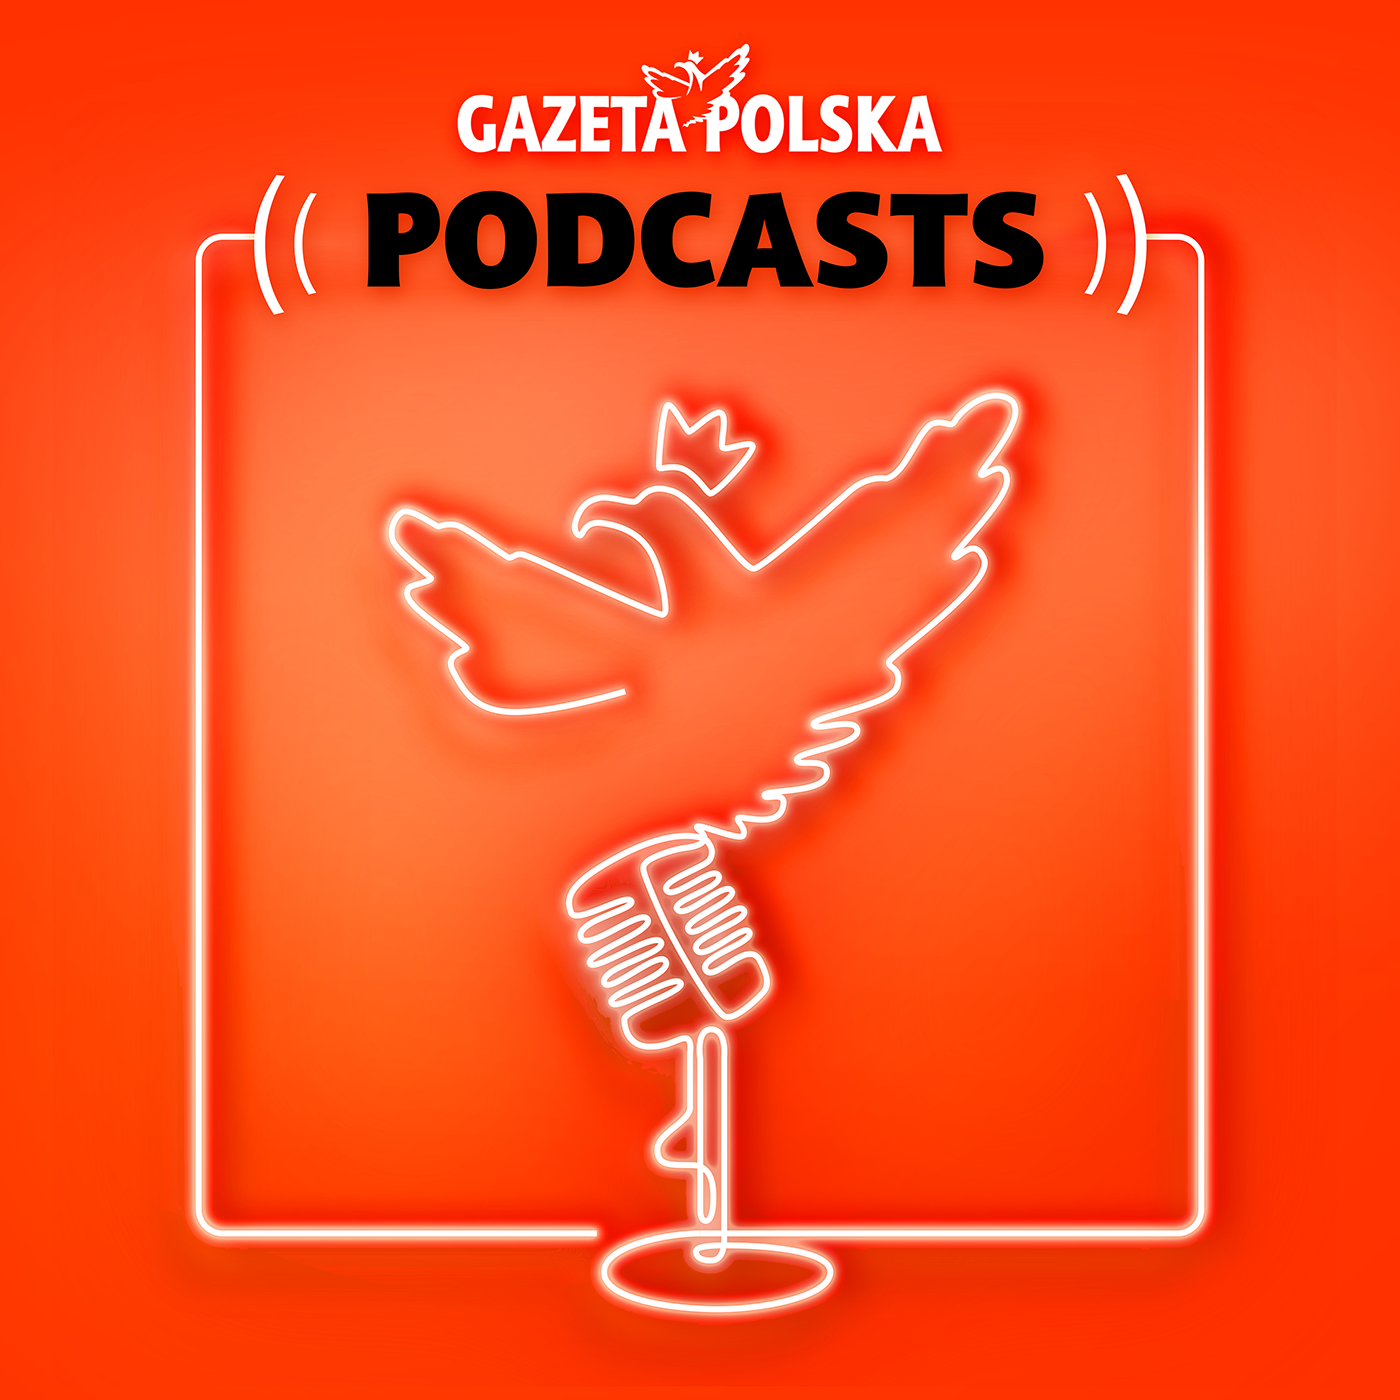 Gazeta Polska podcasts